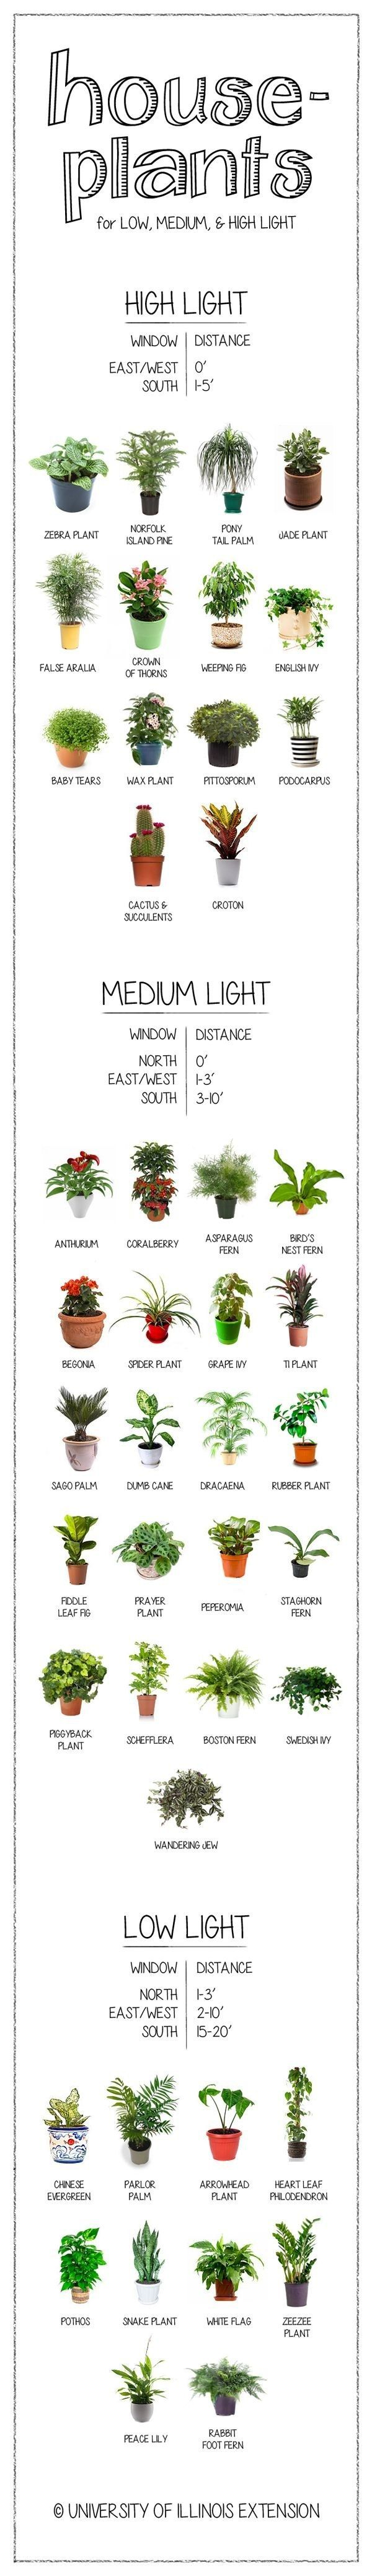 How much light does your houseplant need? Find out on this handy chart. | 23 Absolutely Essential Gardening Diagrams